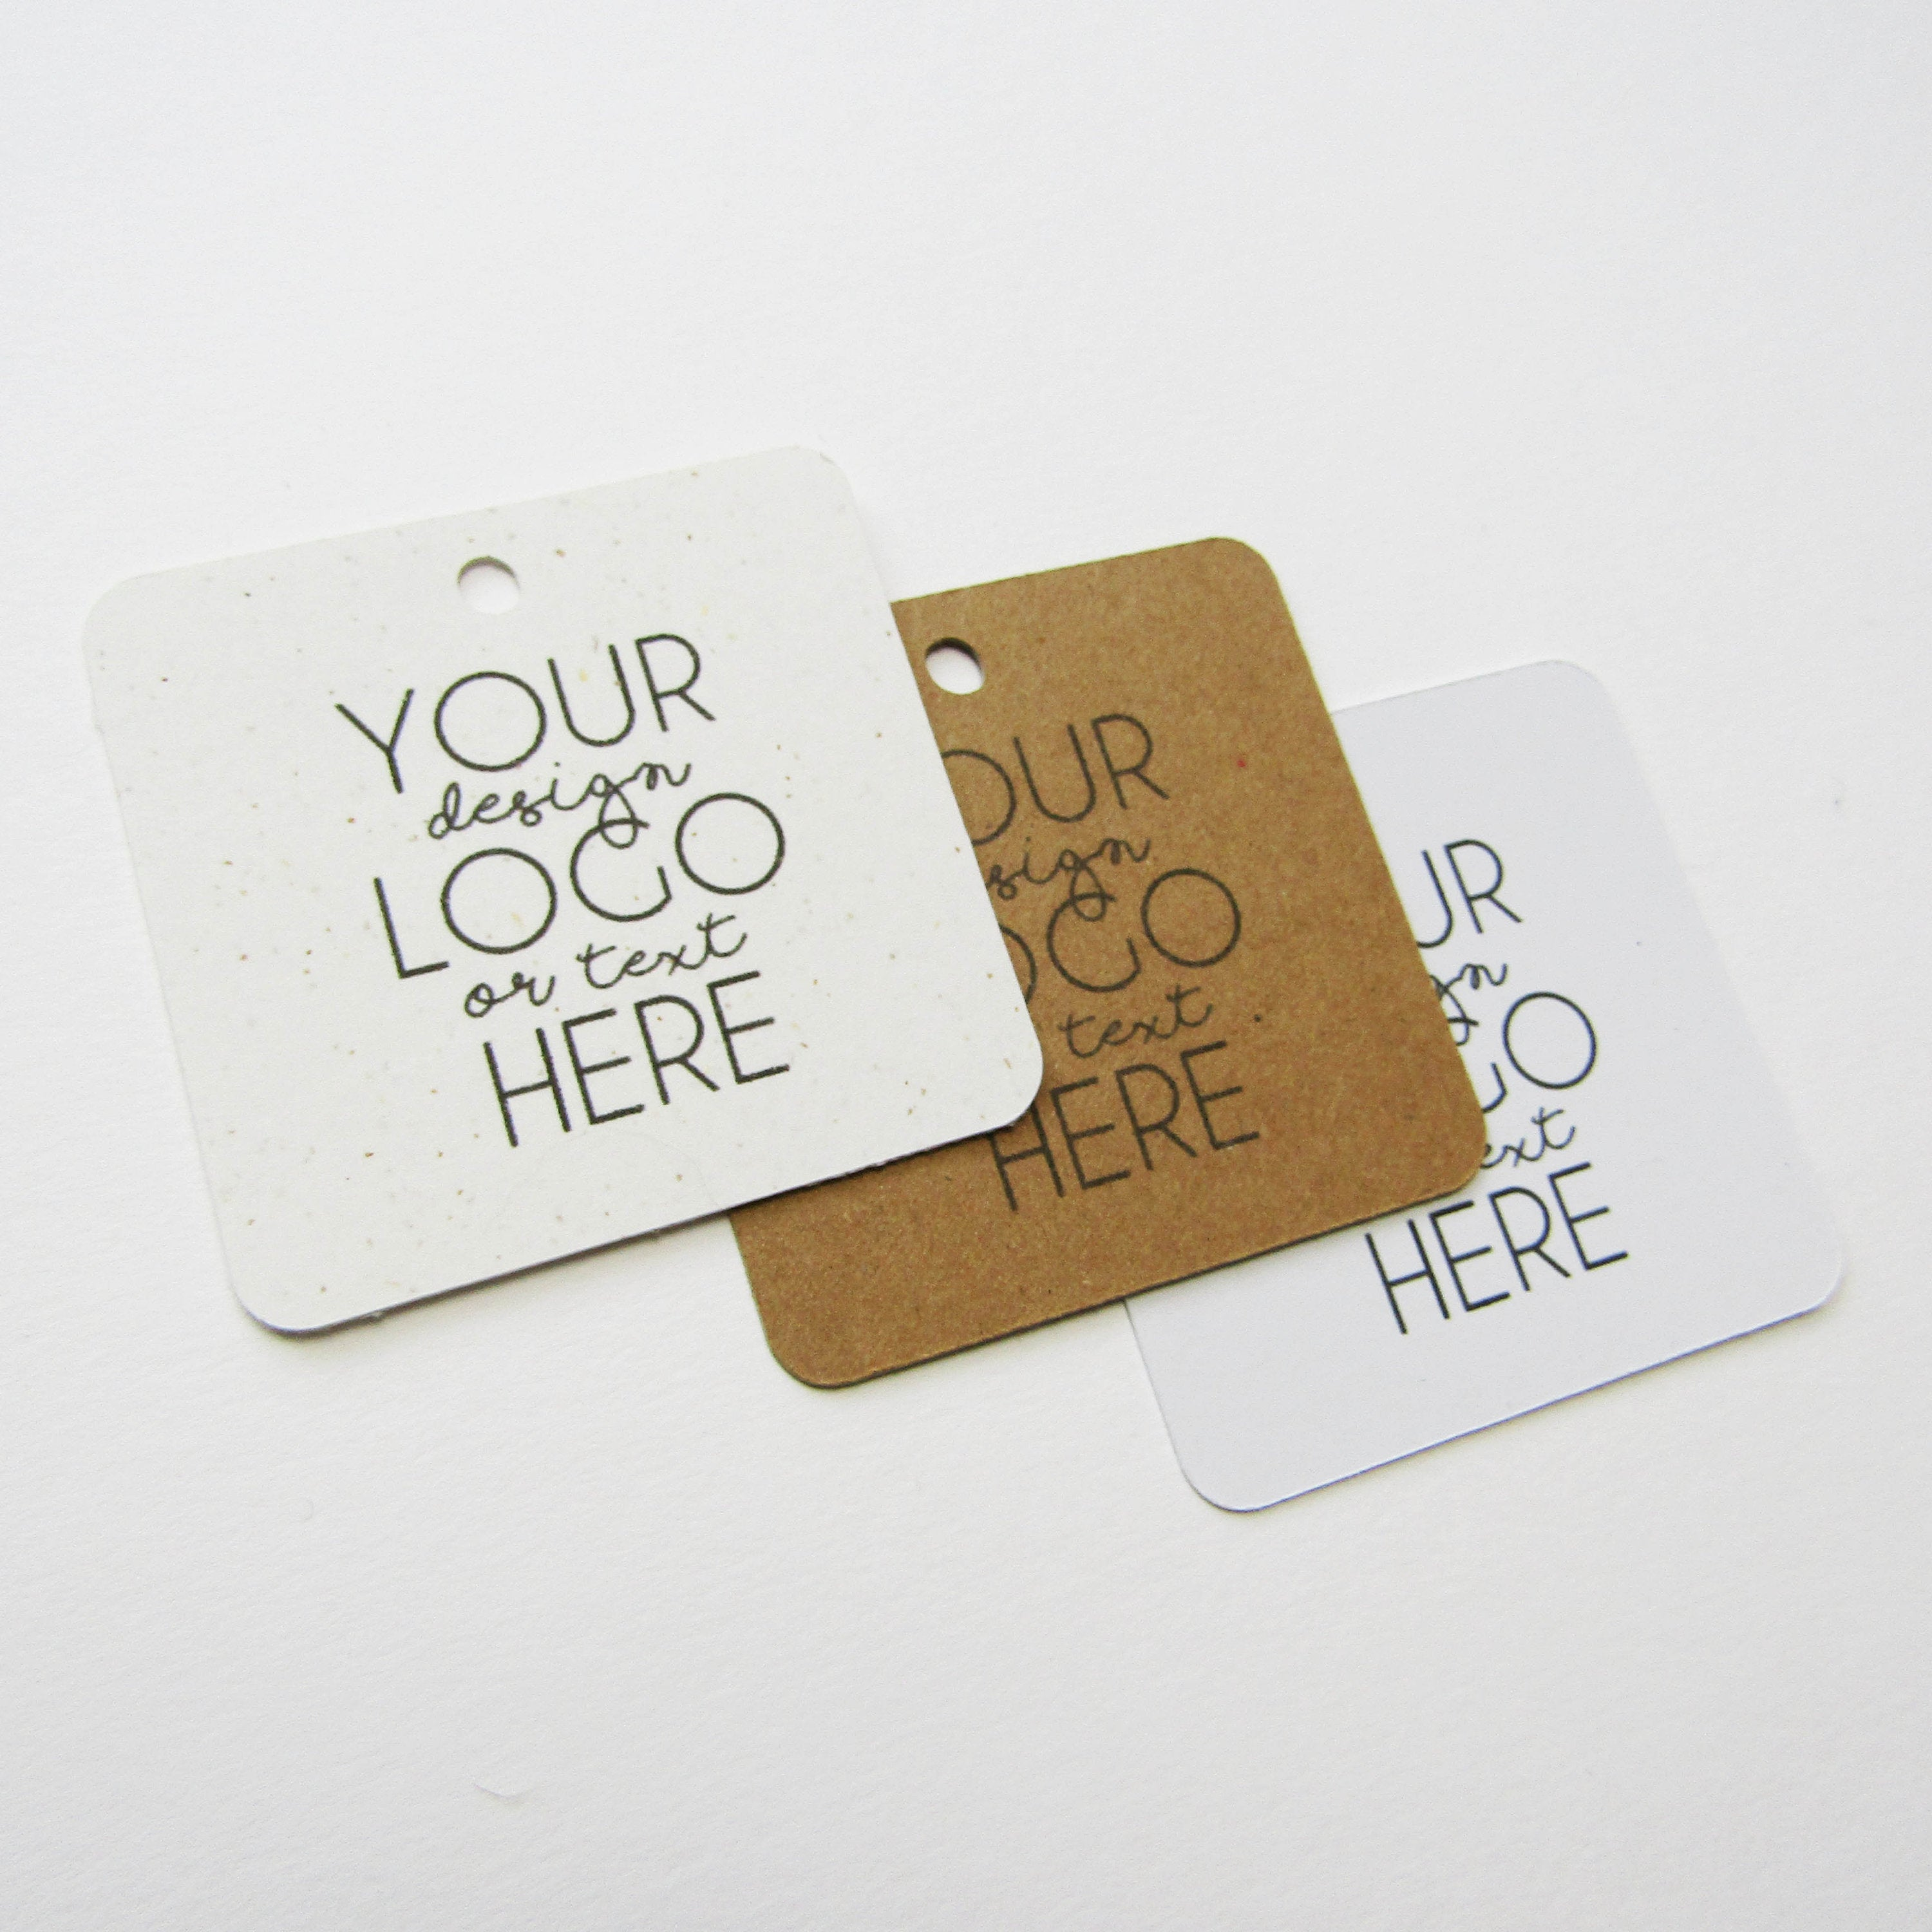 10 Square Rounded Swing Tags With / Without Hemp Twine